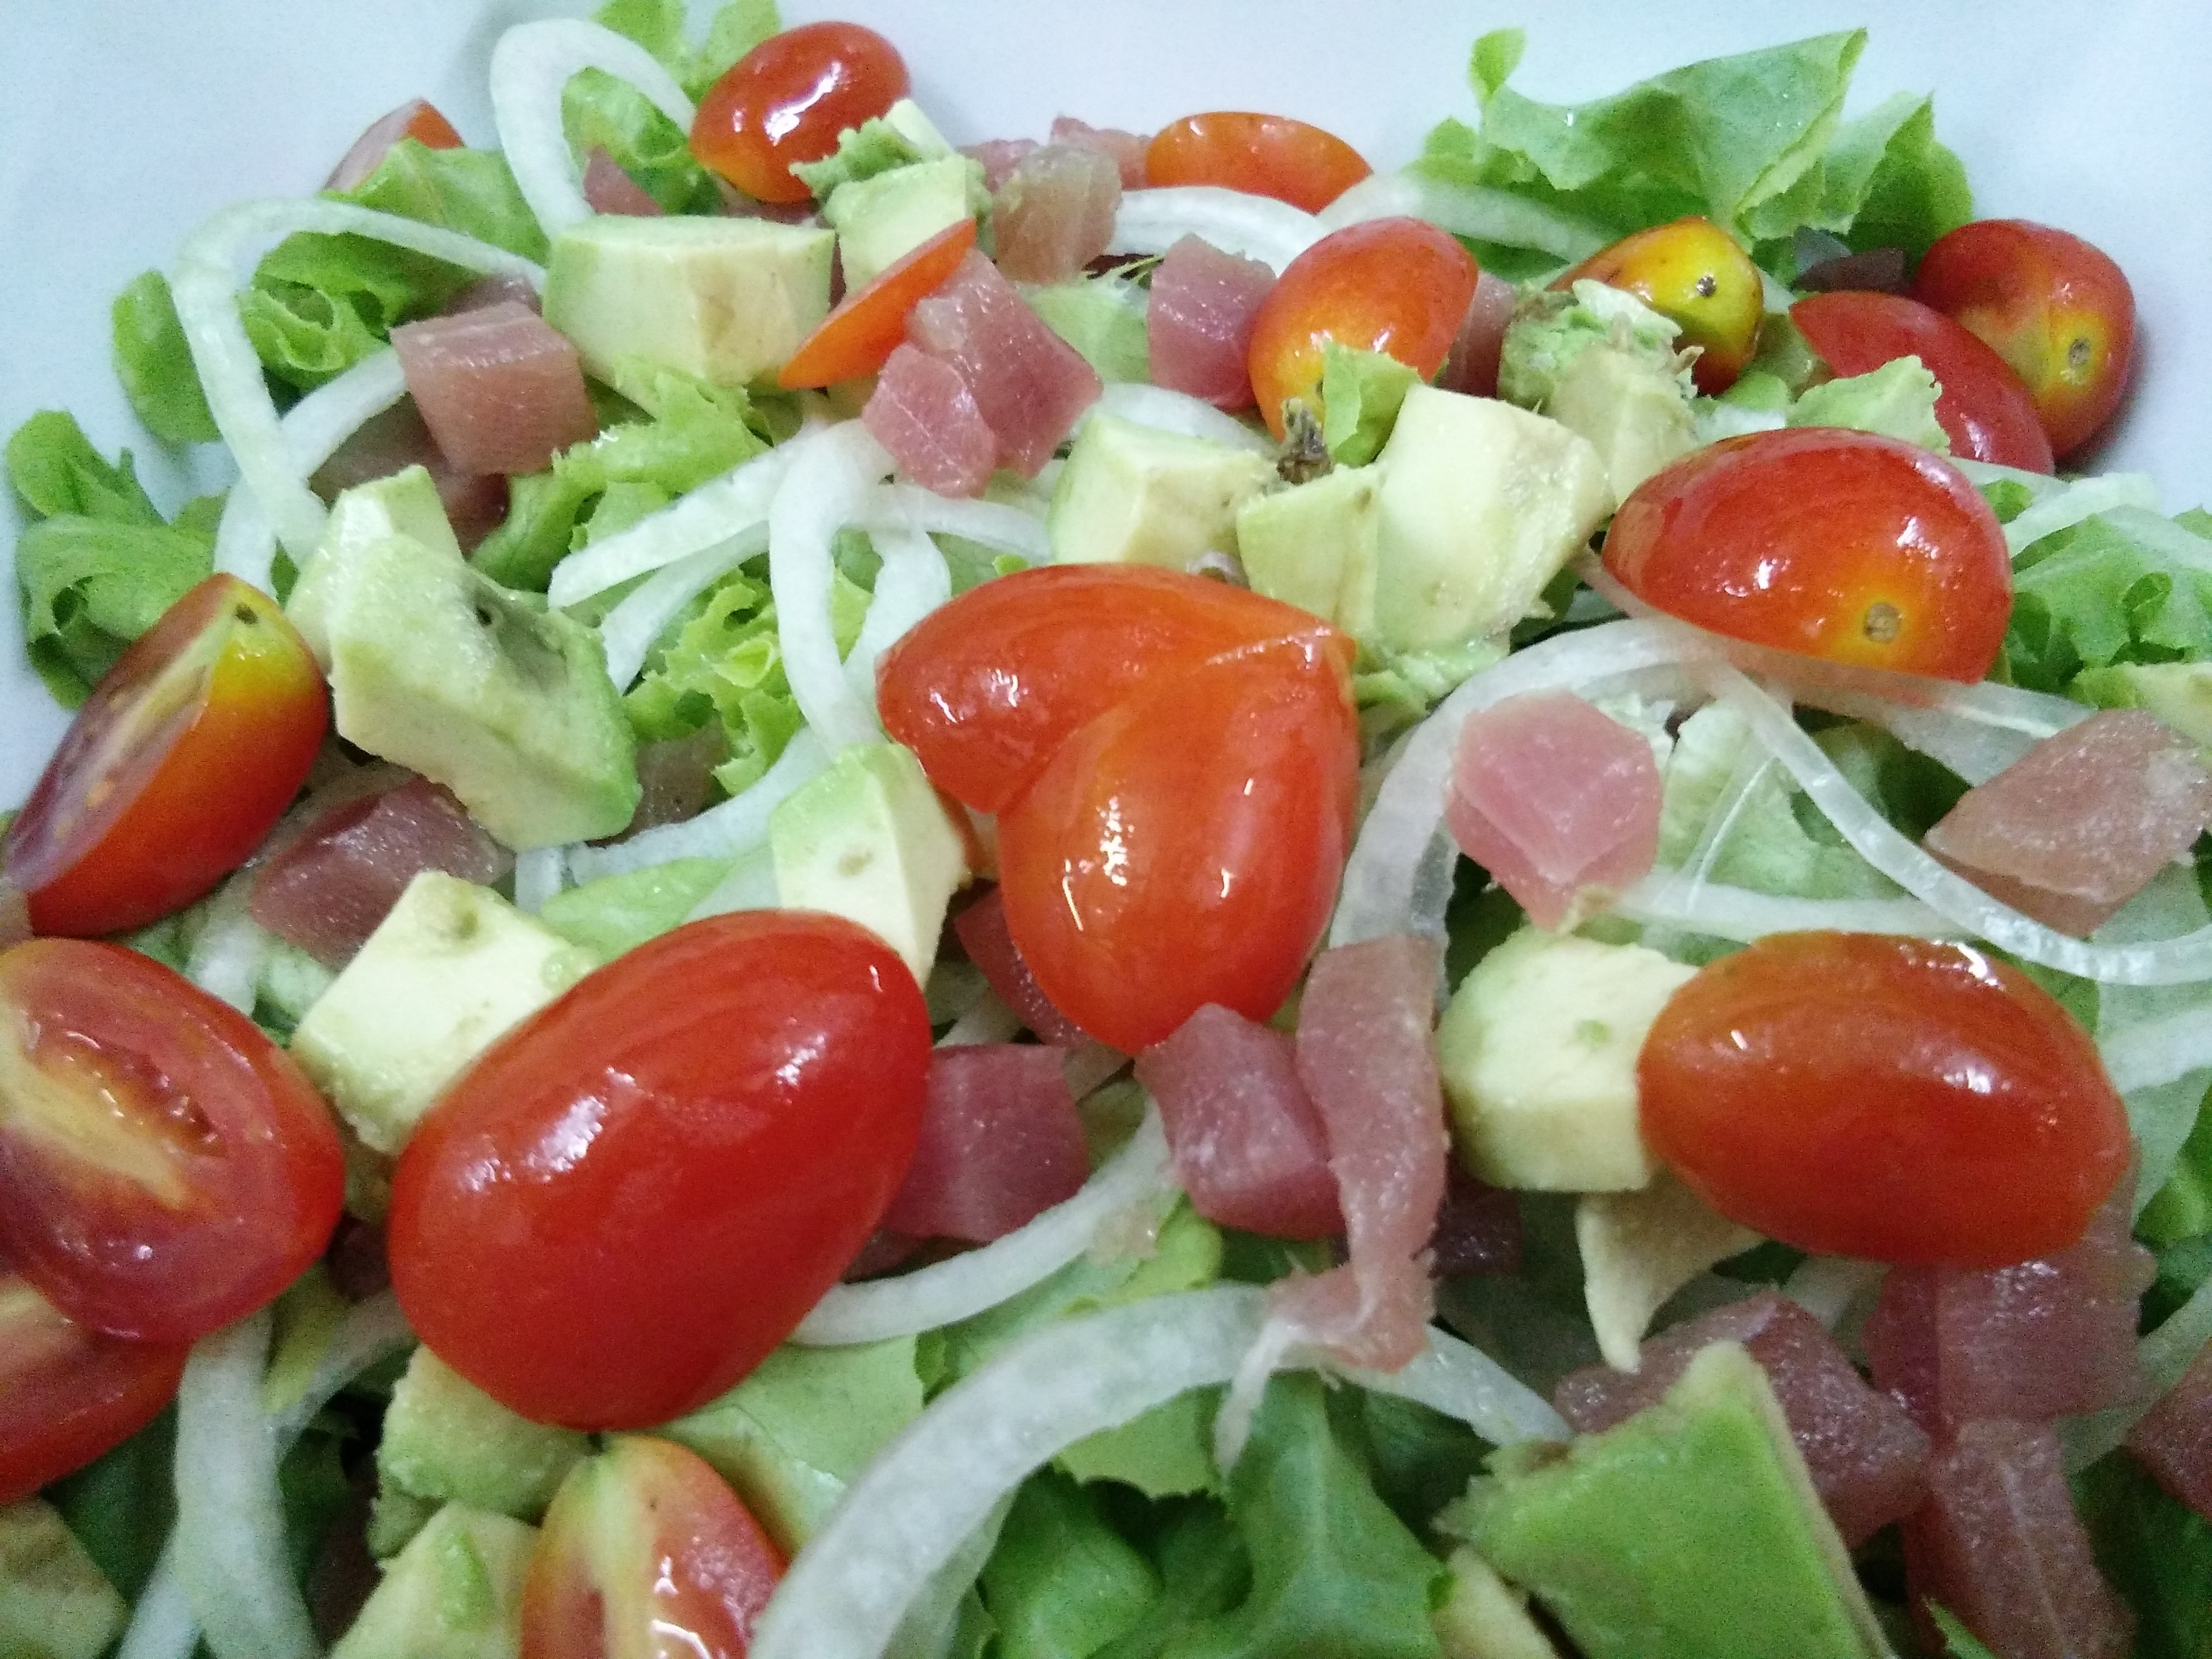 Green salad, avocado,onion,cherry tomato,red tuna